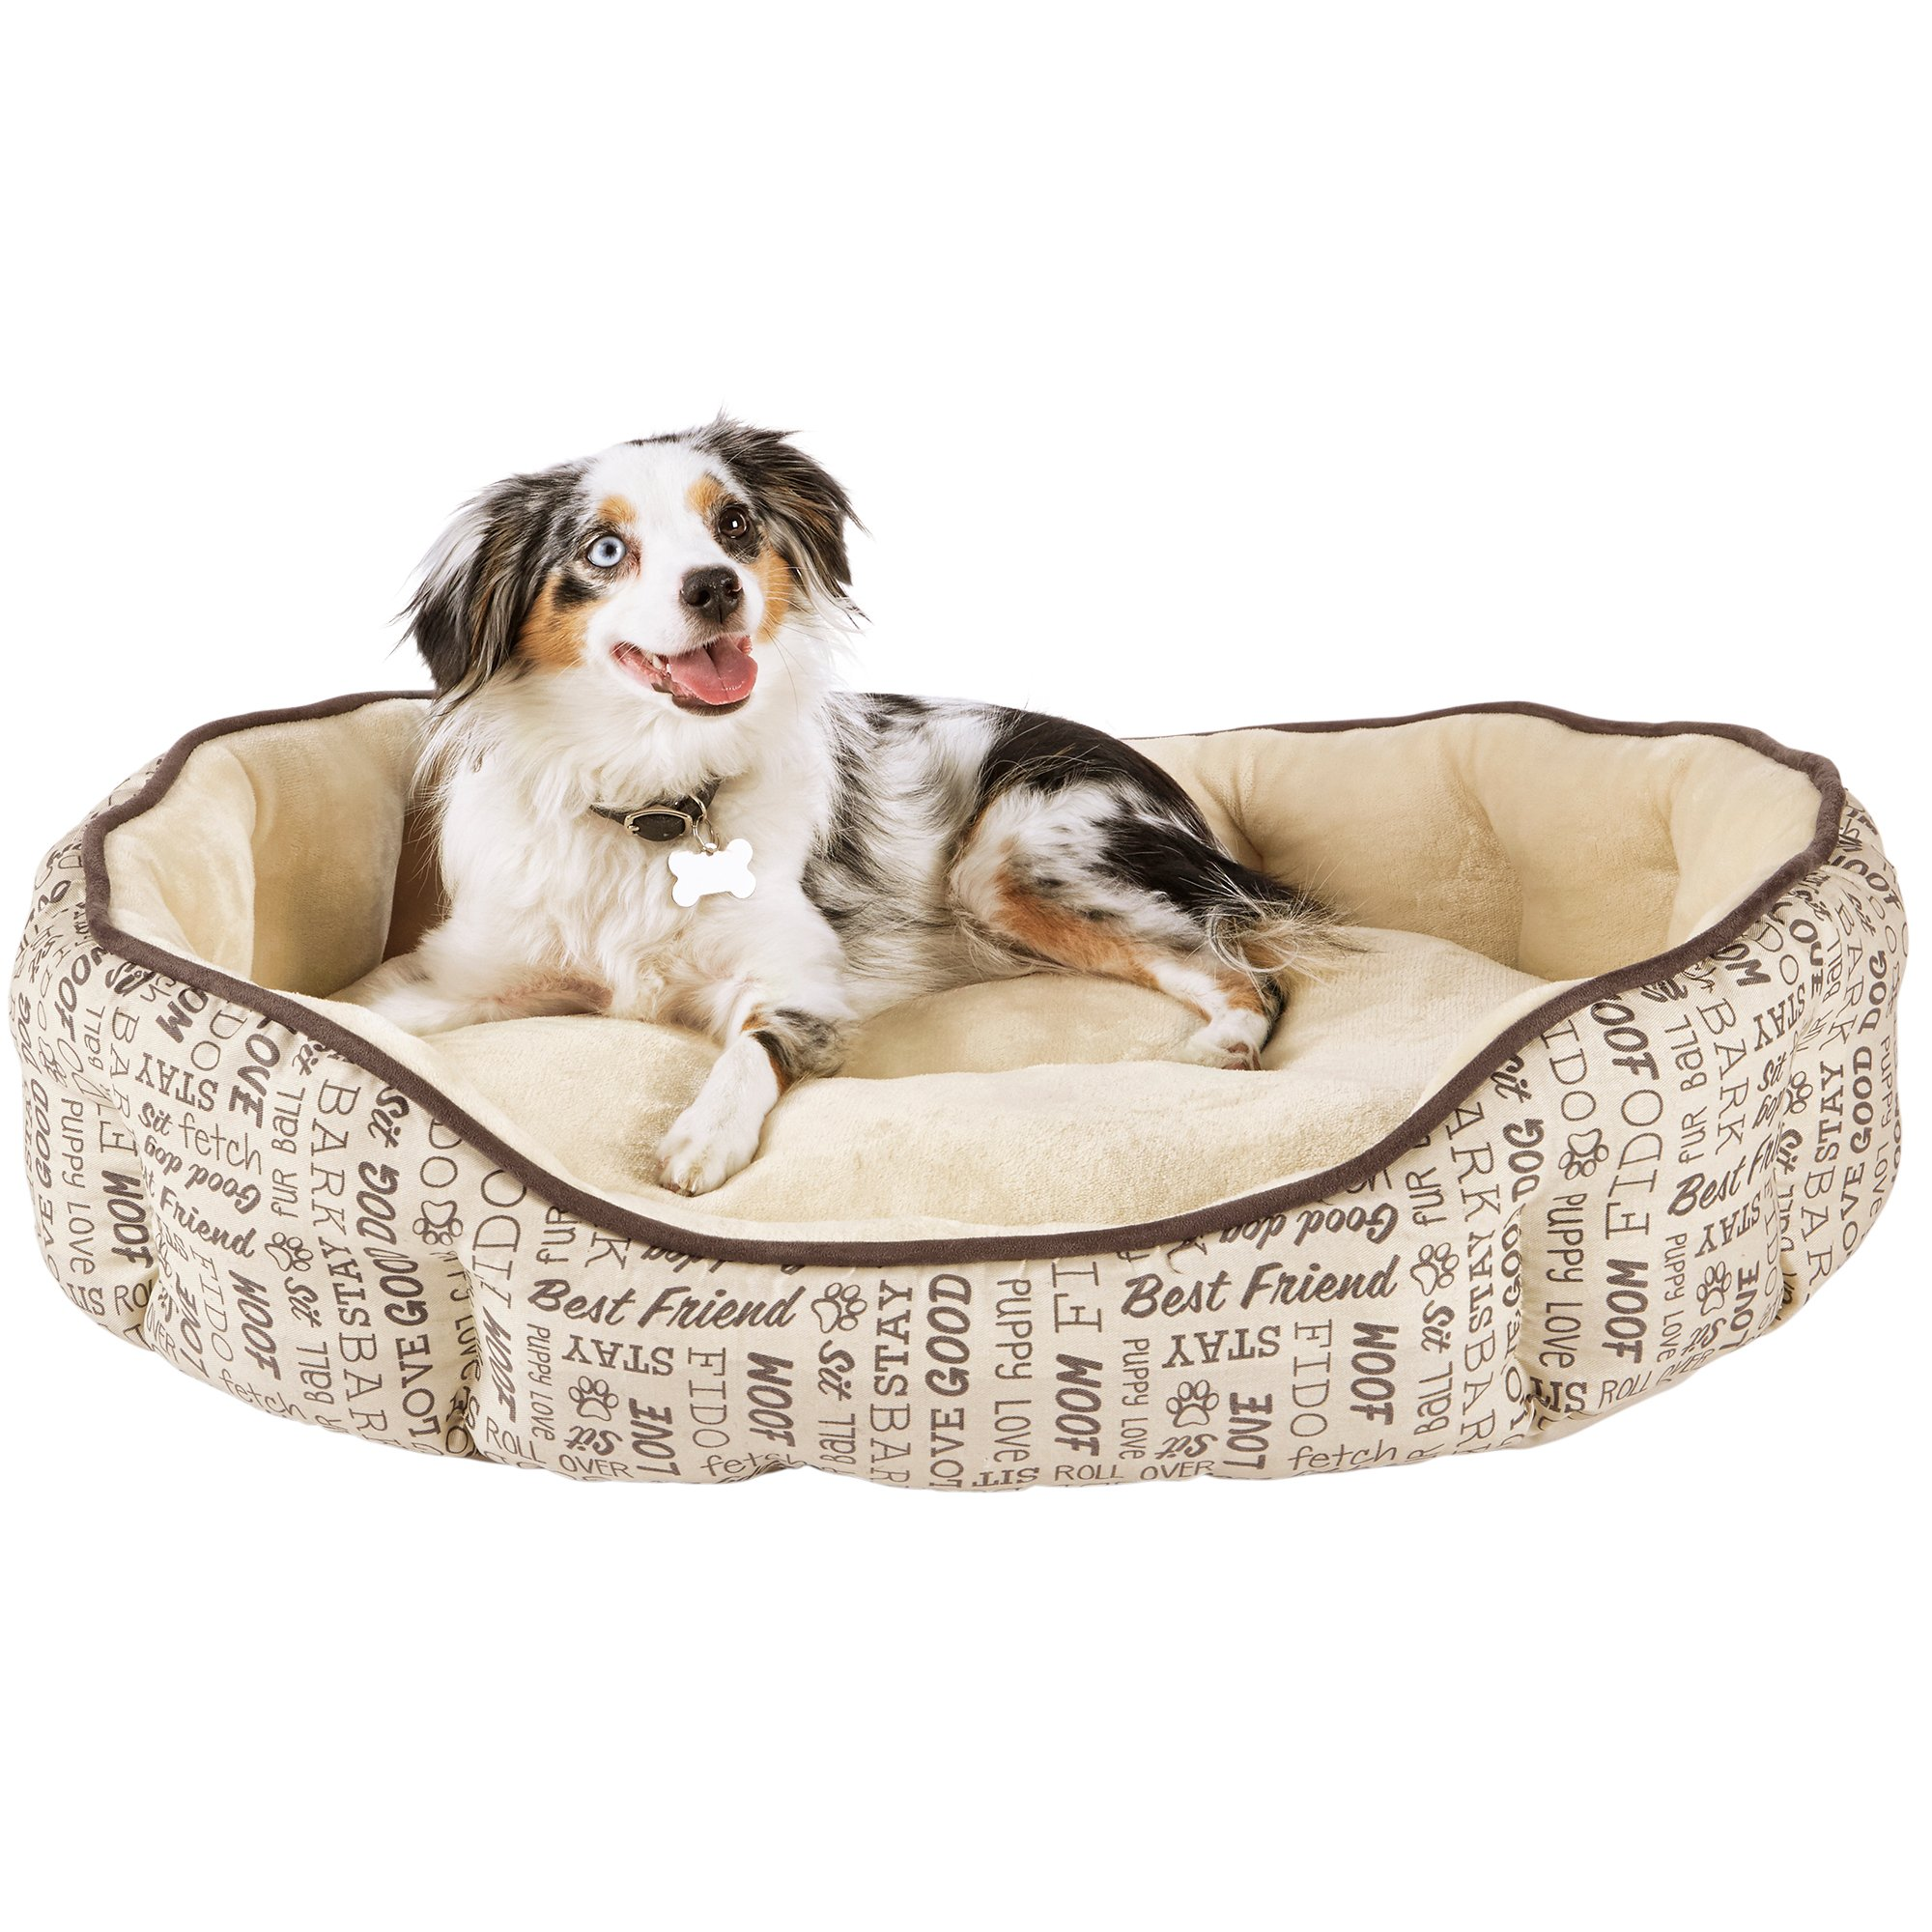 en petco memory harmony foam lounger beds product shop petcostore center bed khaki dog